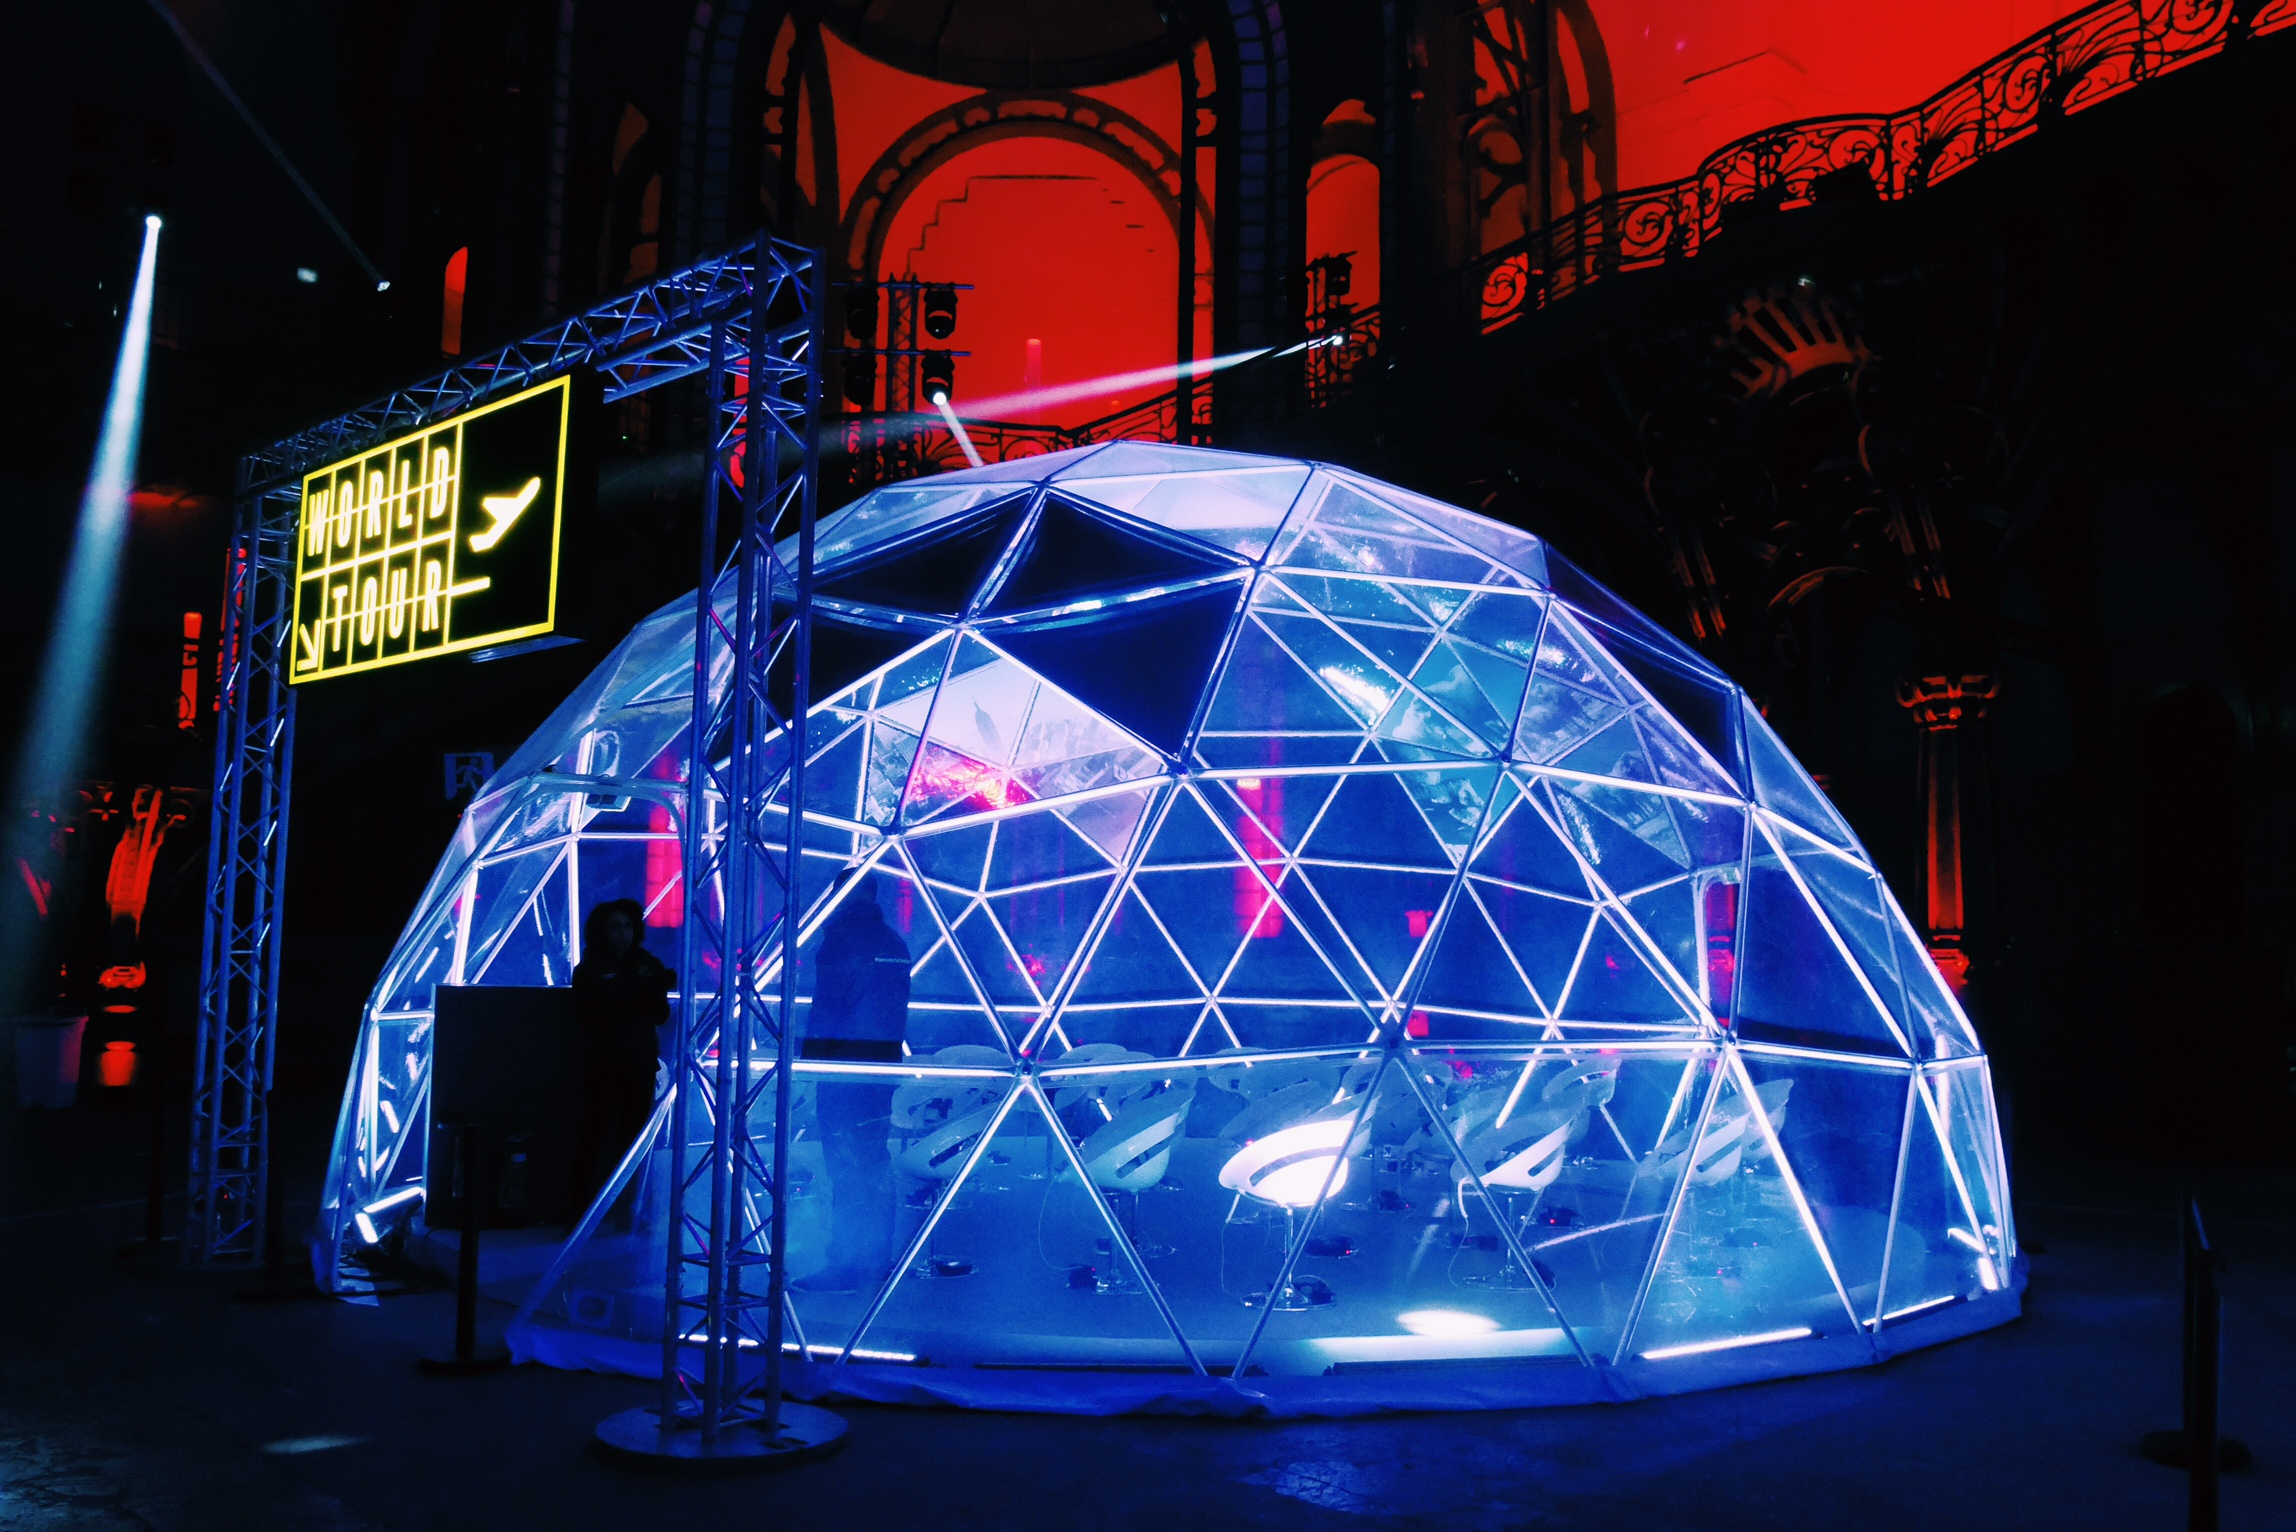 Igloo-lumineux-World-Tour-Gear-VR-Samsung-Life-Changer-Park-parc-réalité-virtuelle-Grand-Palais-des-Glaces-Paris-photos-usofparis-blog.jpg Type du fichie